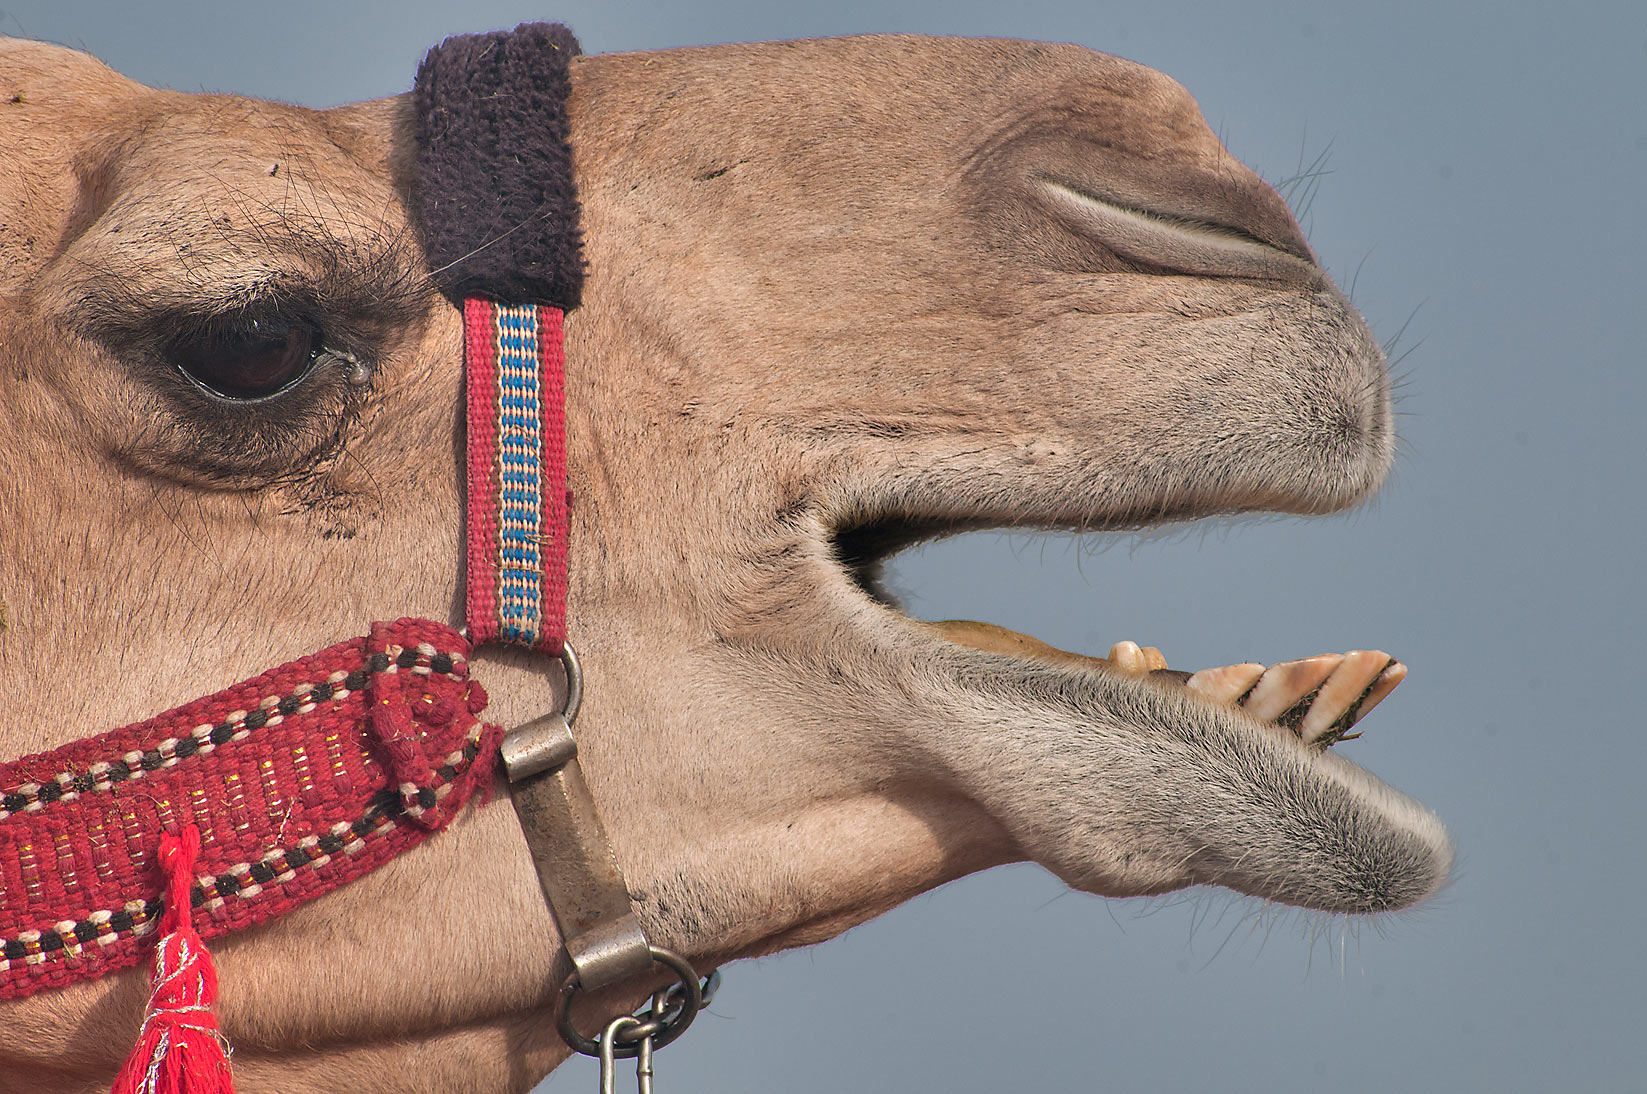 Head of crying camel in Camel Market, Wholesale Markets area. Doha, Qatar